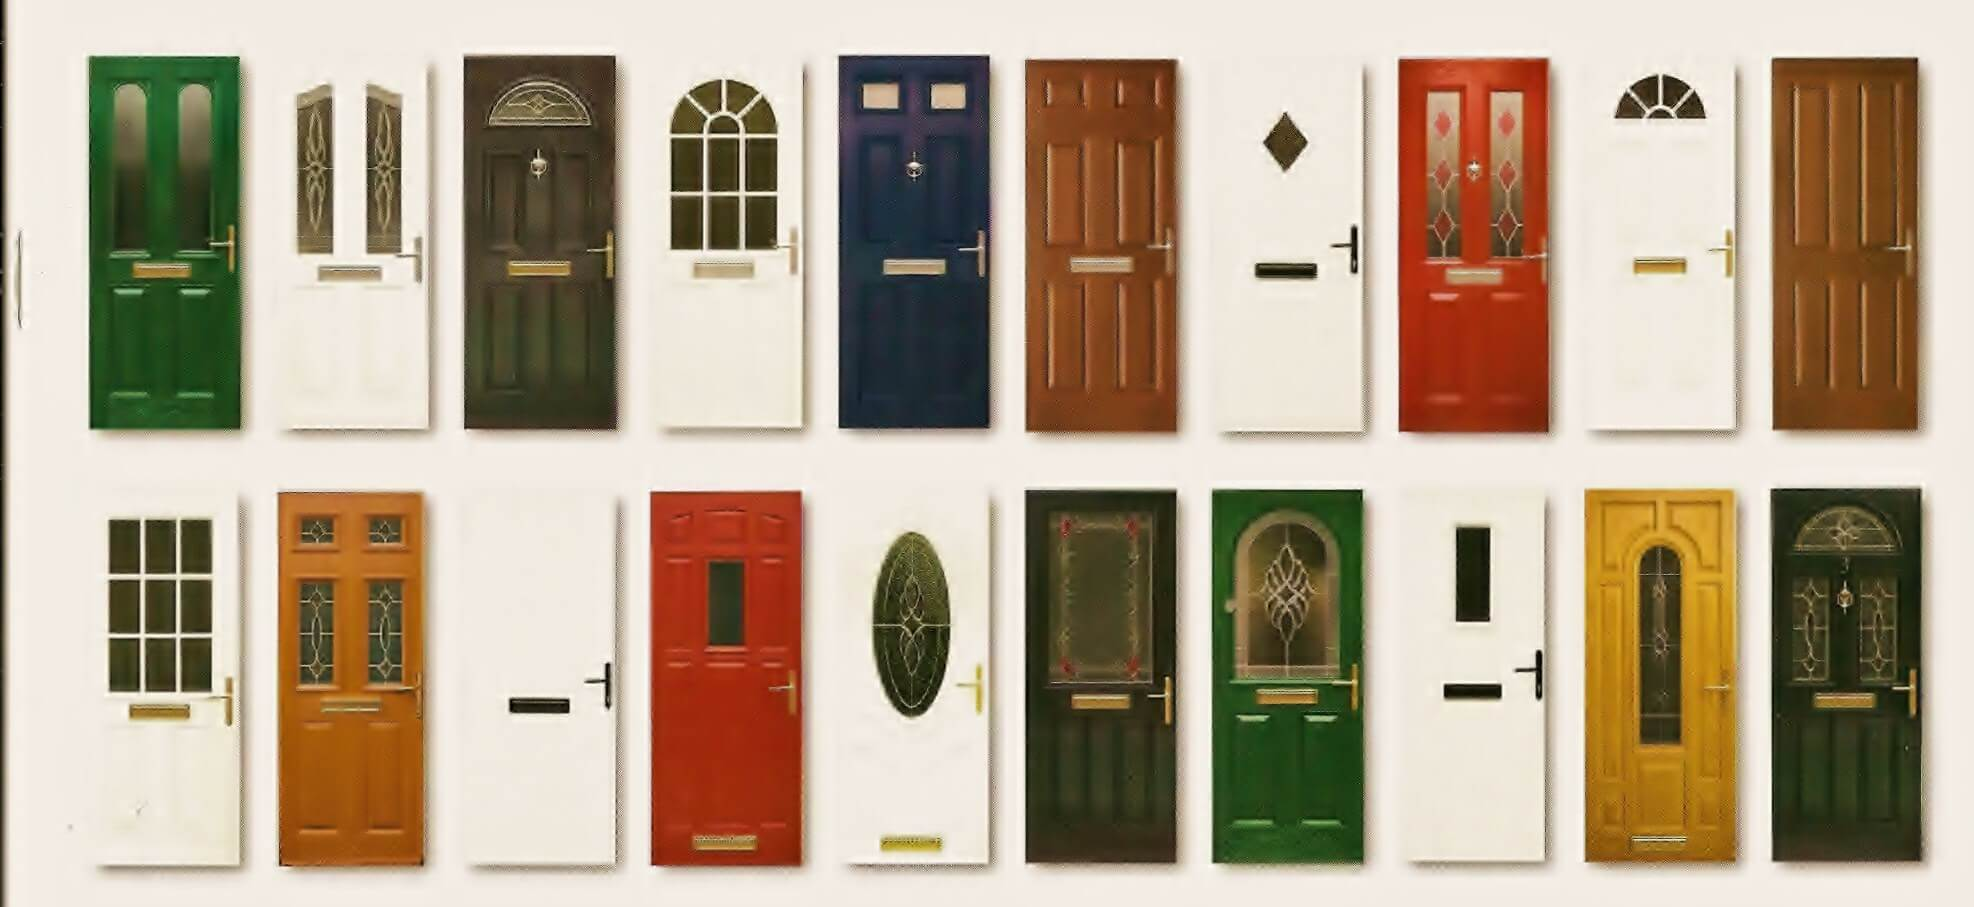 The green old-style door of the 10 door personality test